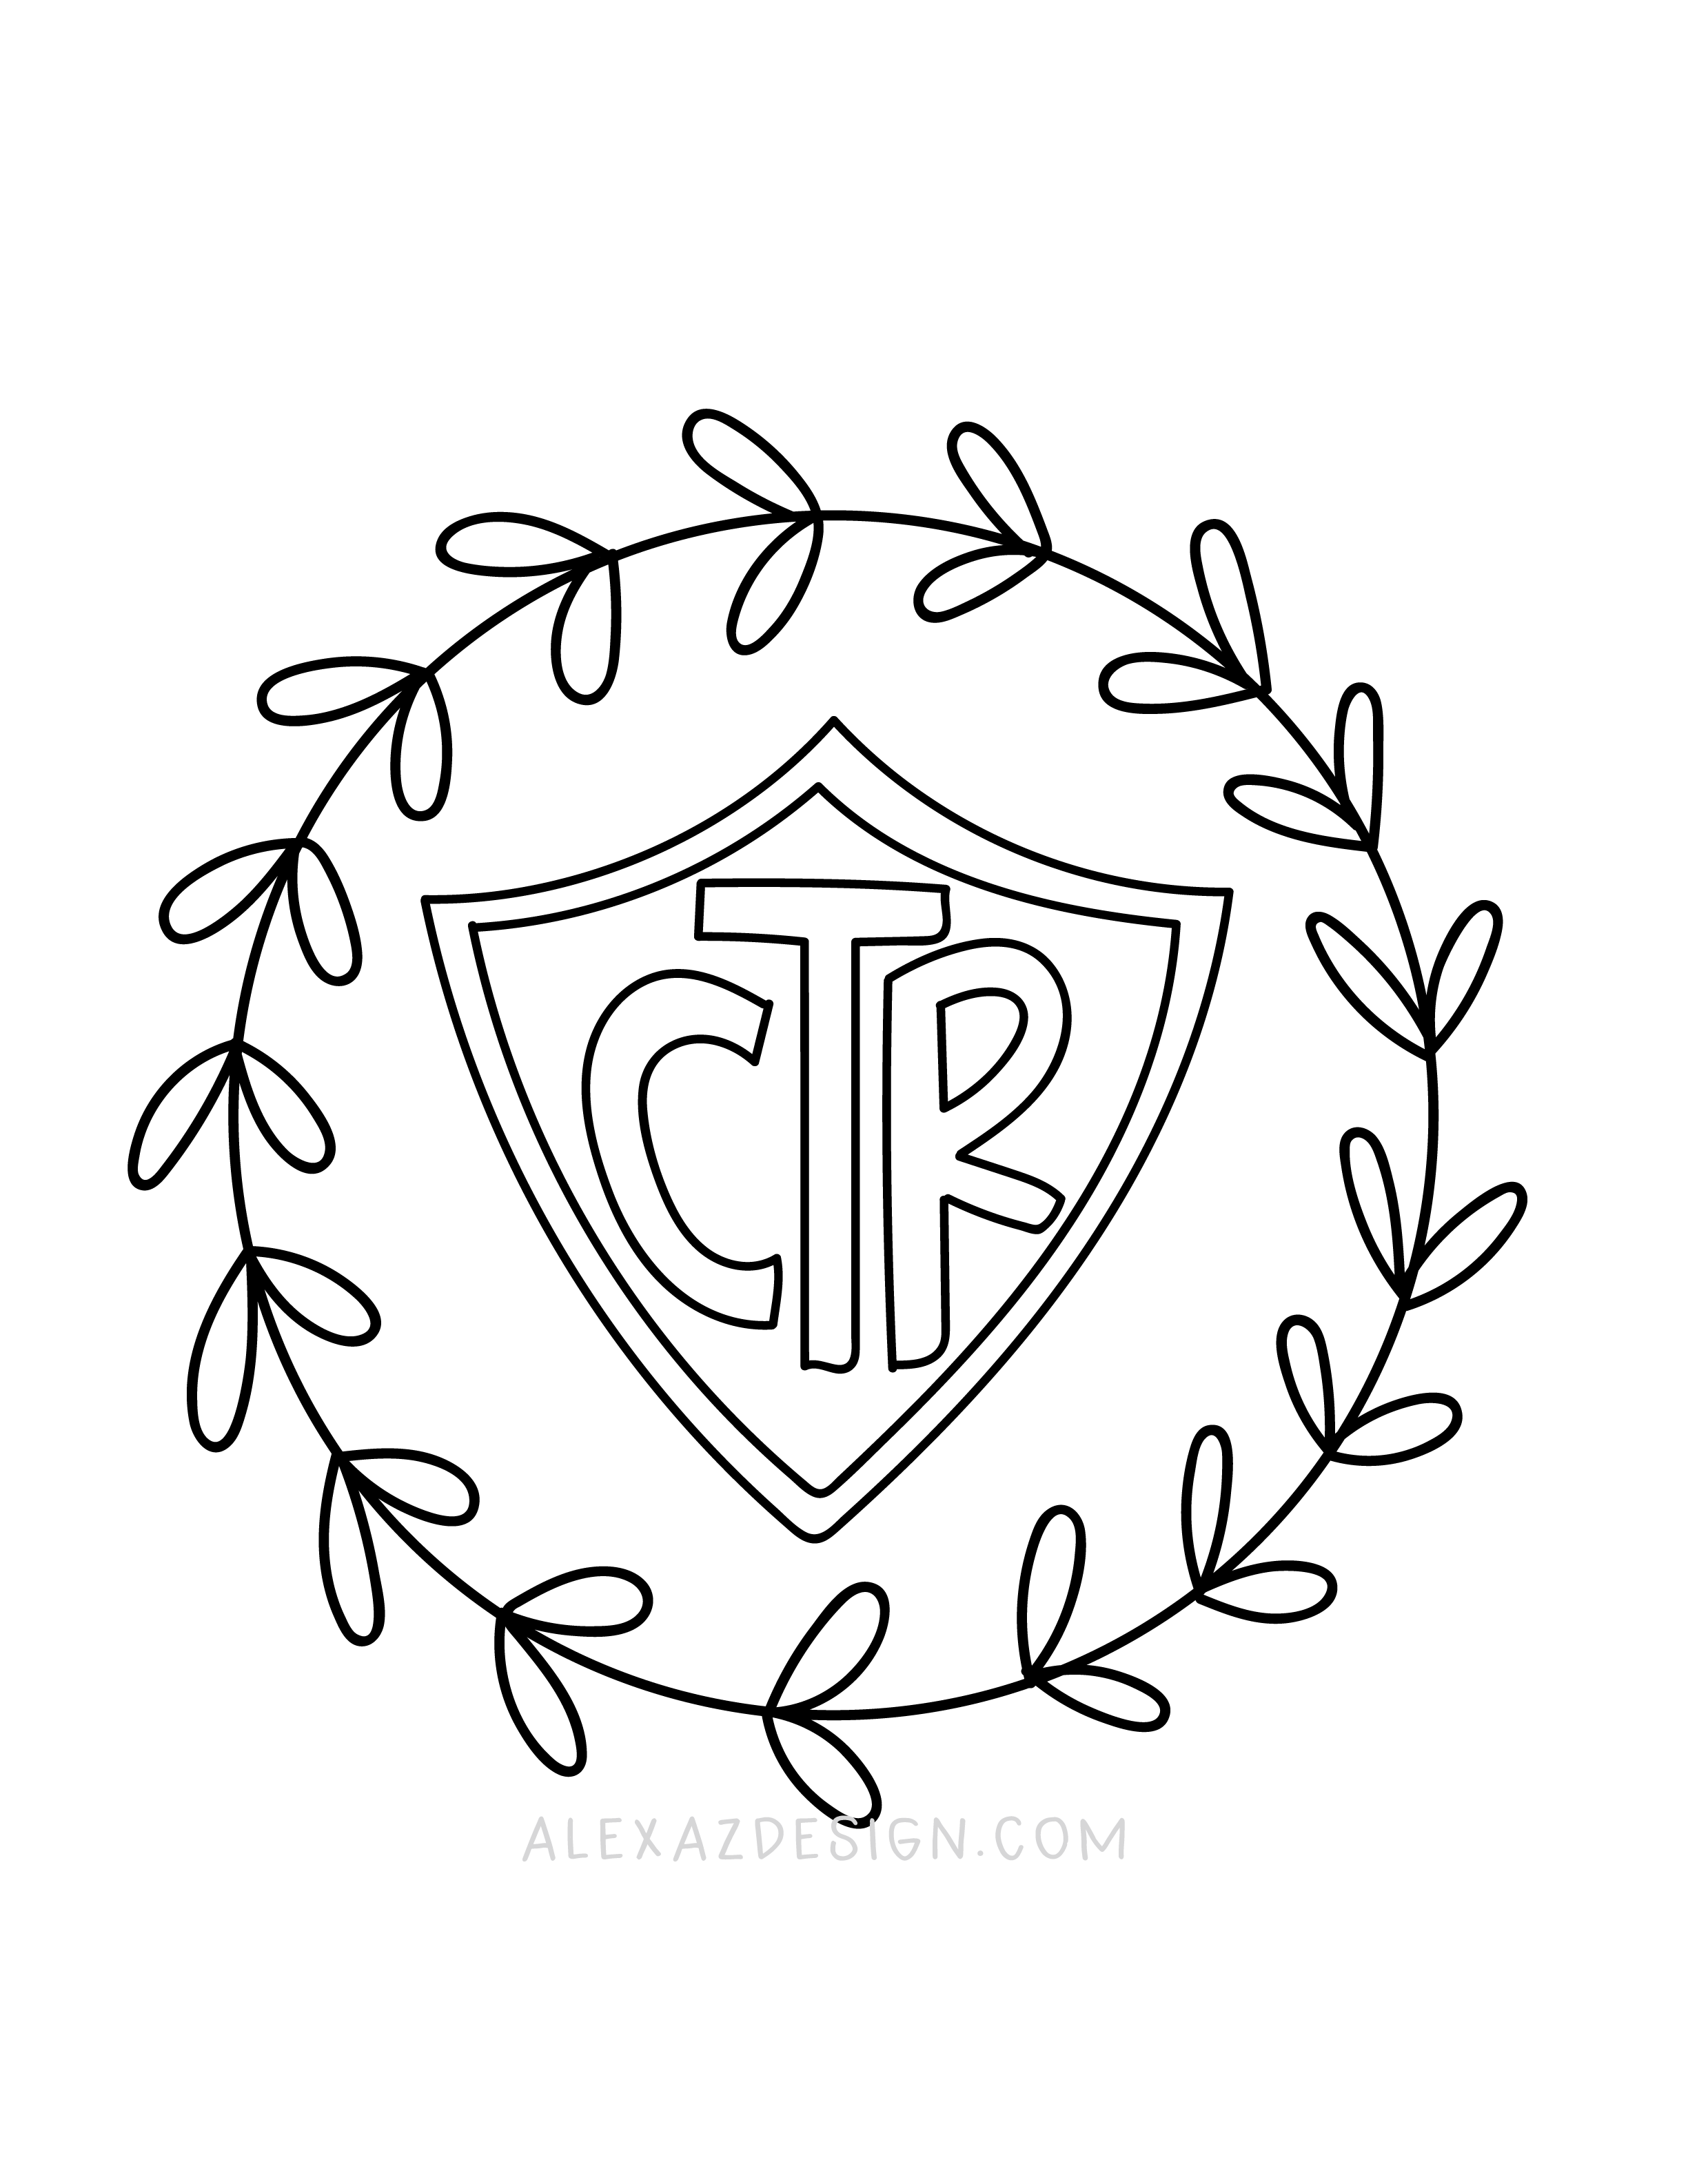 General Conference Coloring Page Printables Coloring Pages Lds Coloring Pages Jesus Coloring Pages